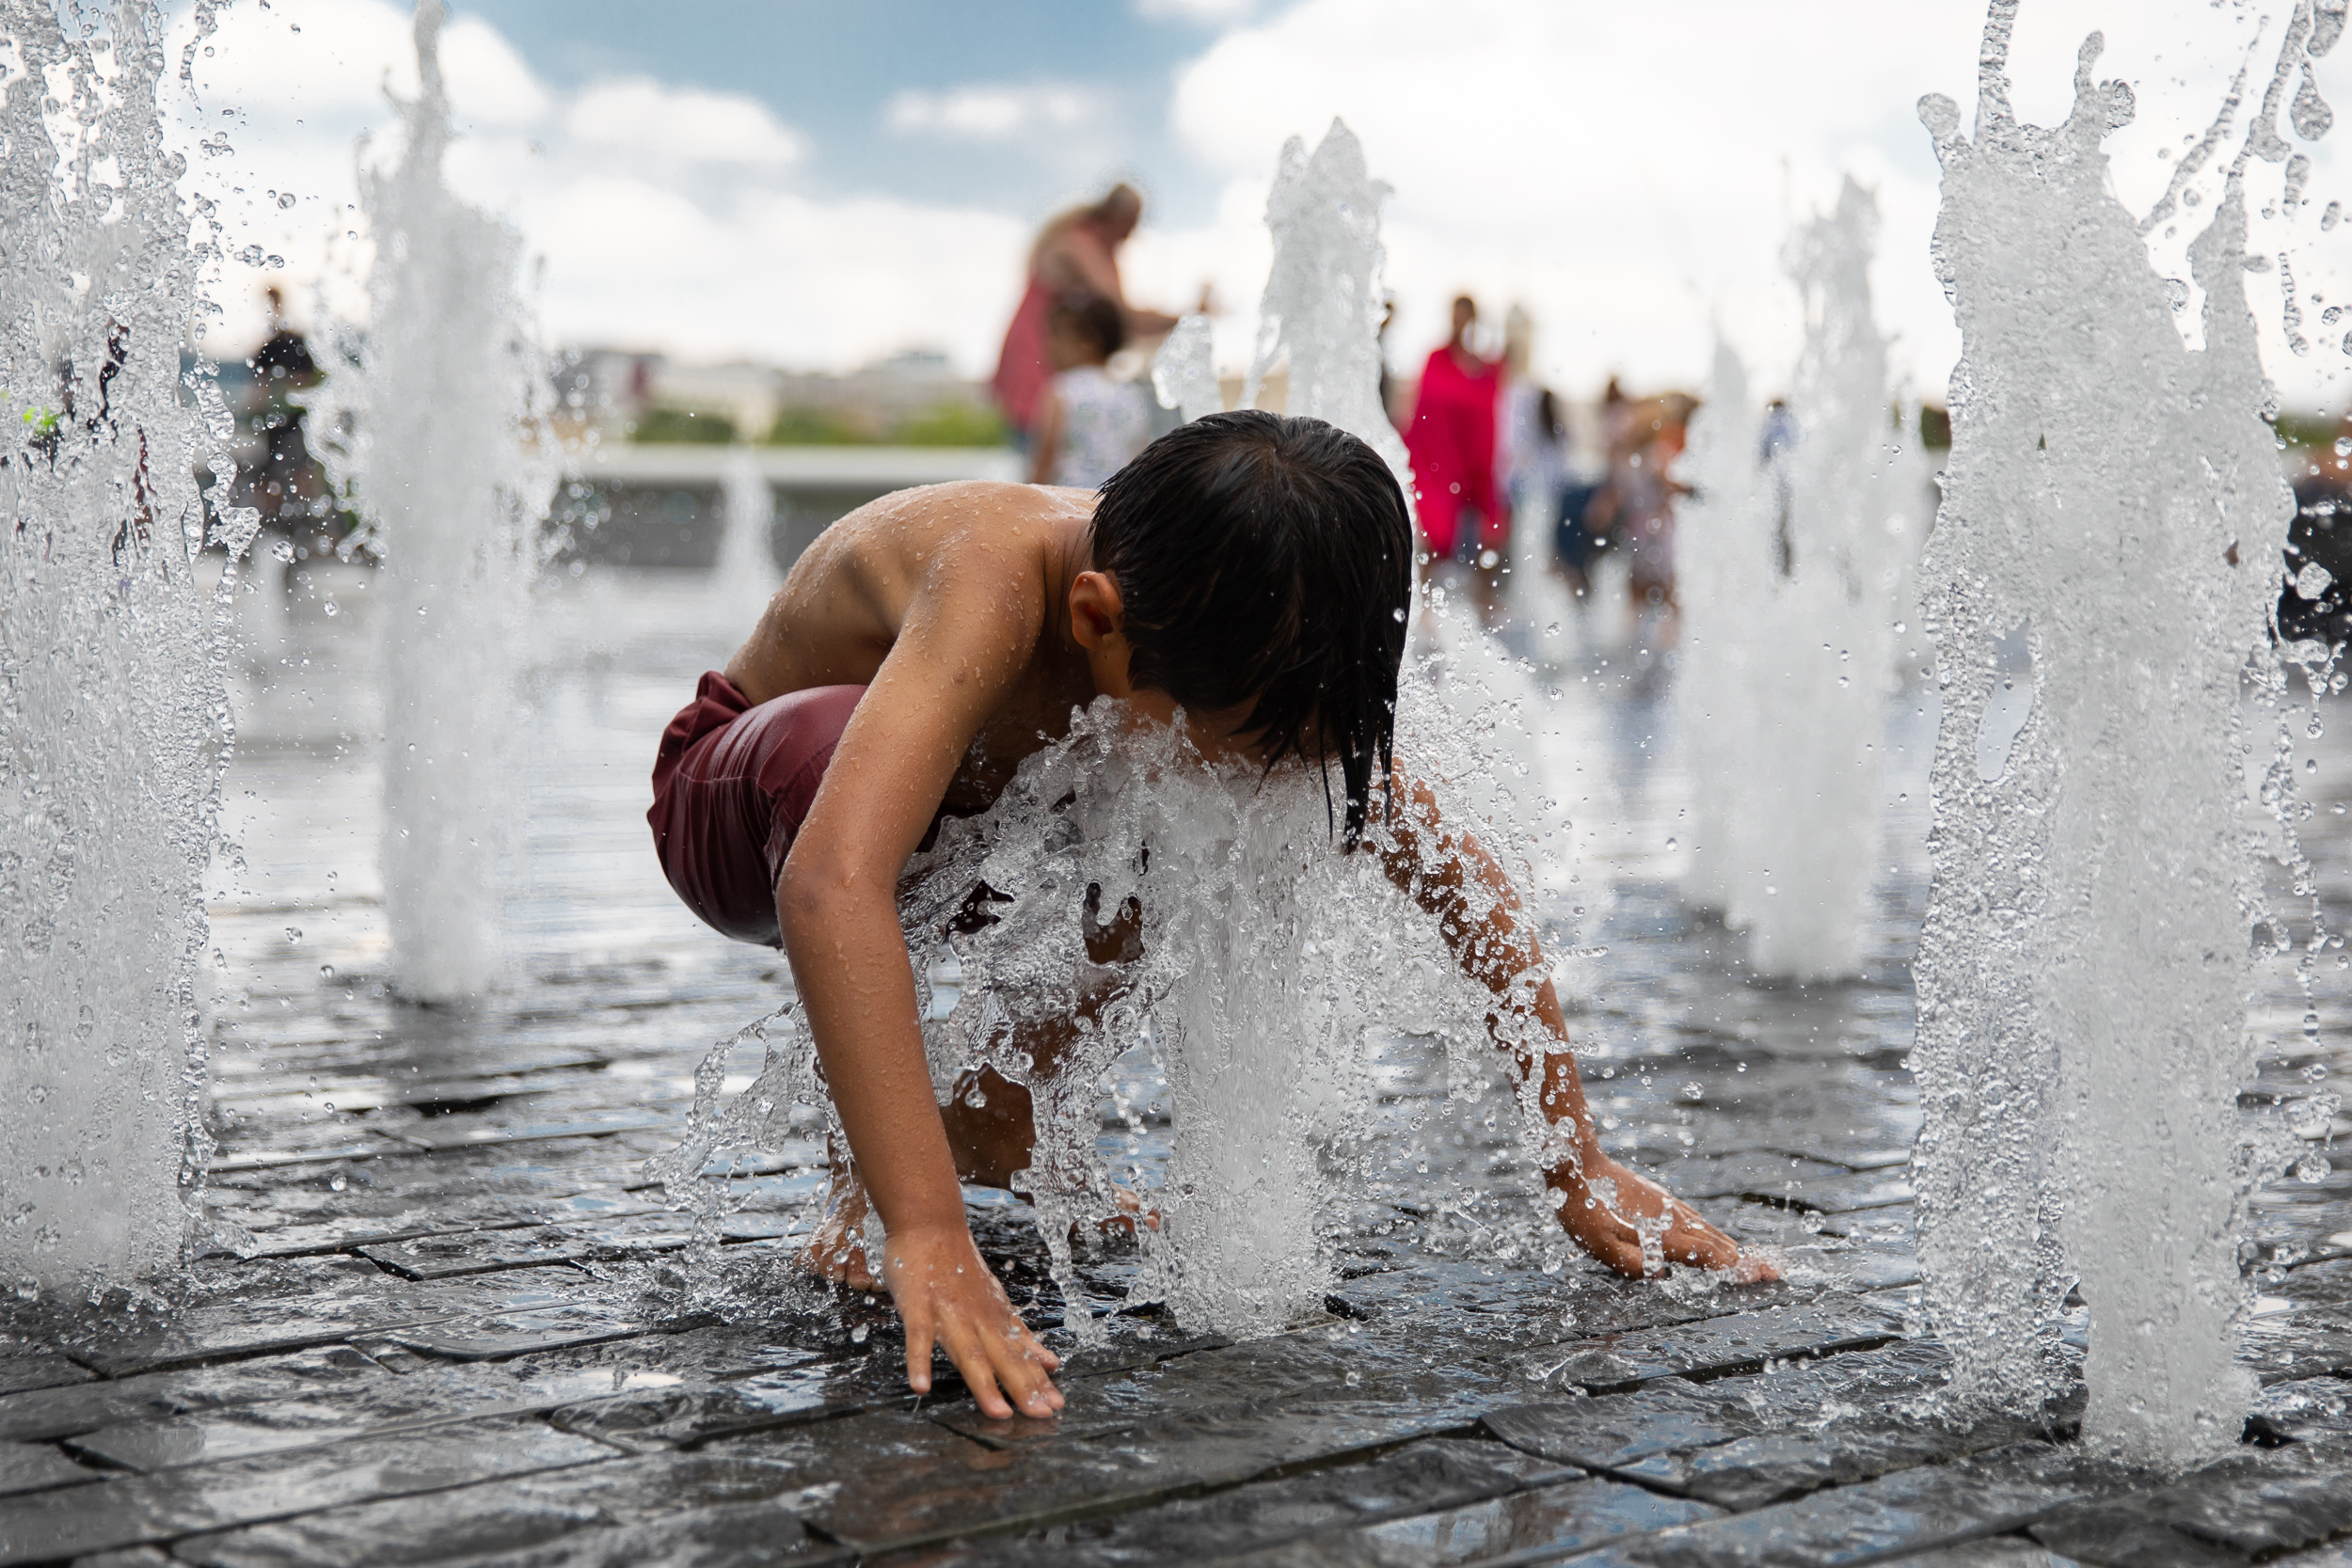 A child cools off in a fountain near London Bridge during hot weather in the capital. July 2018 - London, UK